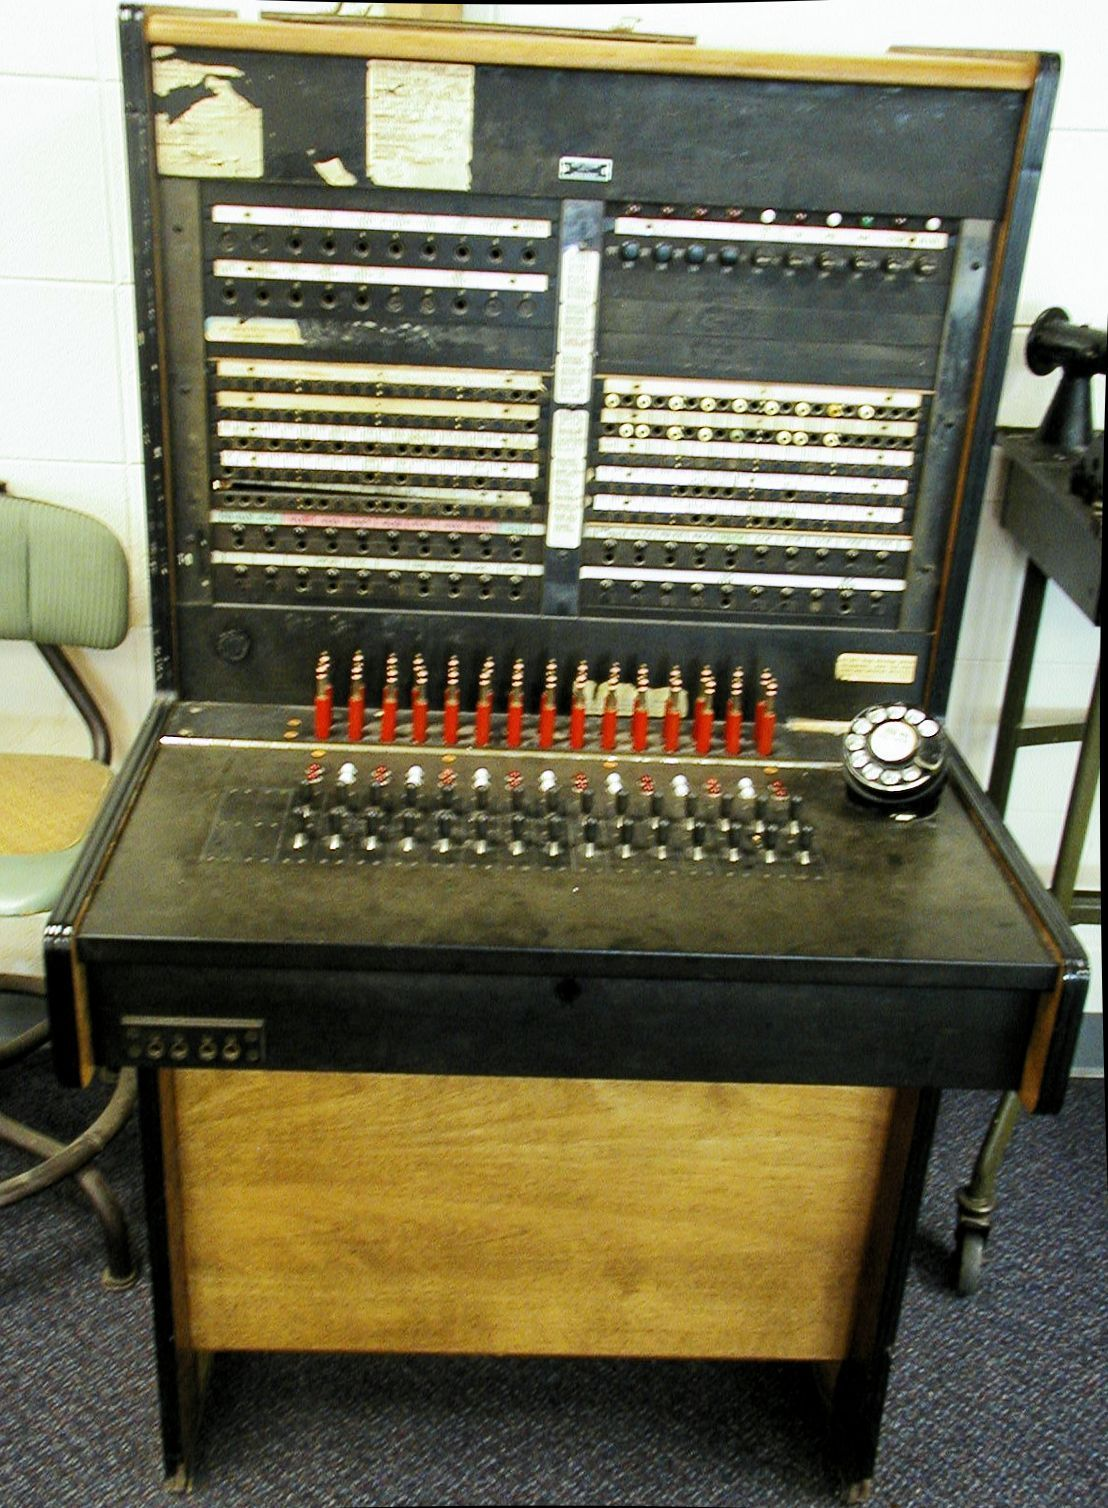 old pbx operator switchboard from 1950s 1960s photographed at old old pbx operator switchboard from 1950s 1960s photographed at old atlanta learning center in